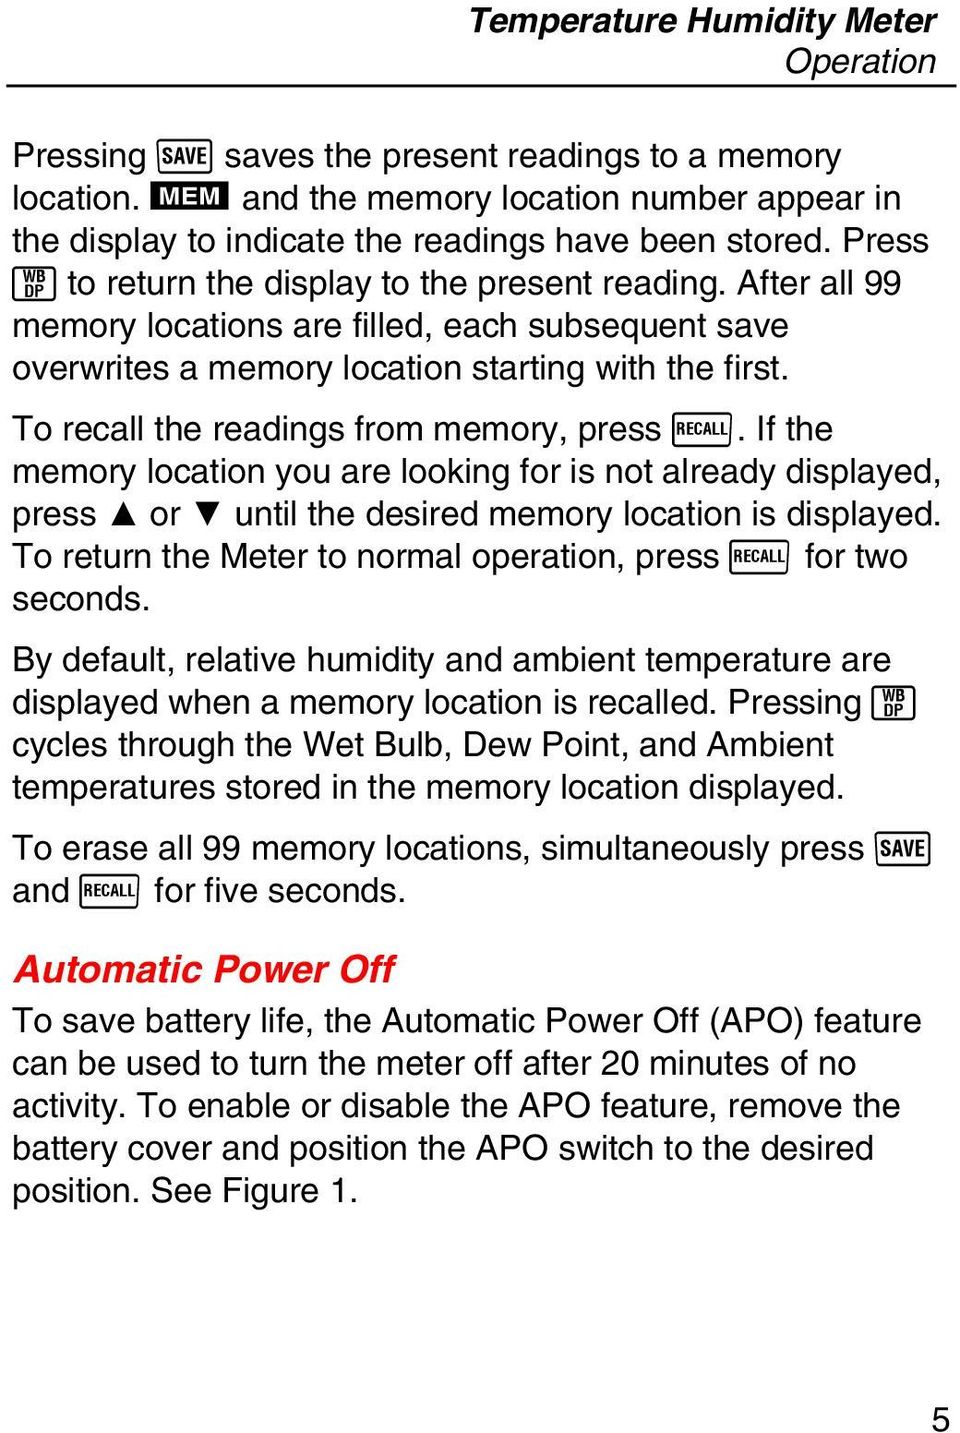 To recall the readings from memory, press R. If the memory location you are looking for is not already displayed, press or until the desired memory location is displayed.